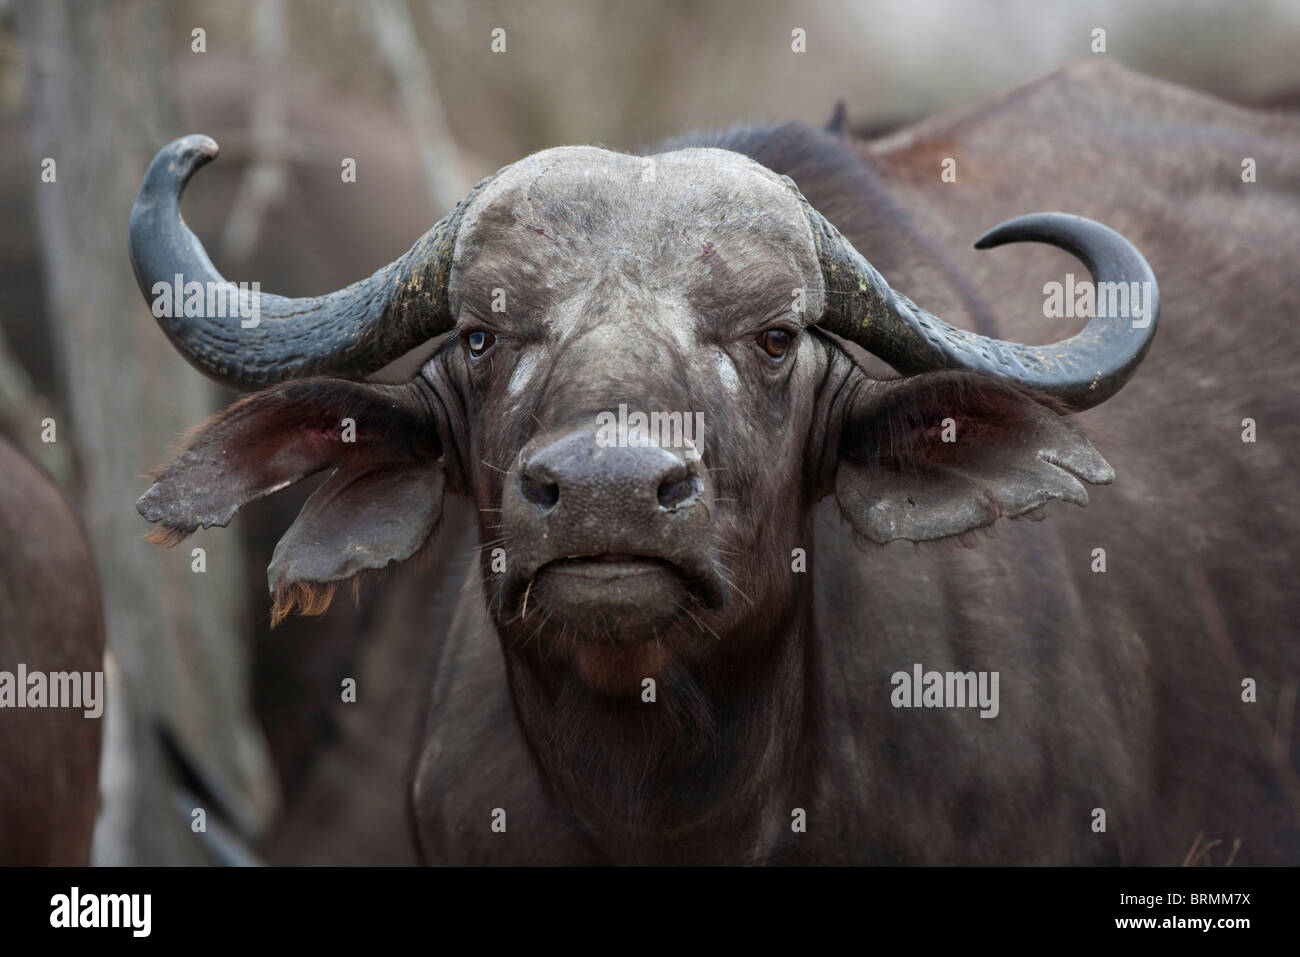 Frontal portrait of a female buffalo with a deformed horn and blind eye - Stock Image